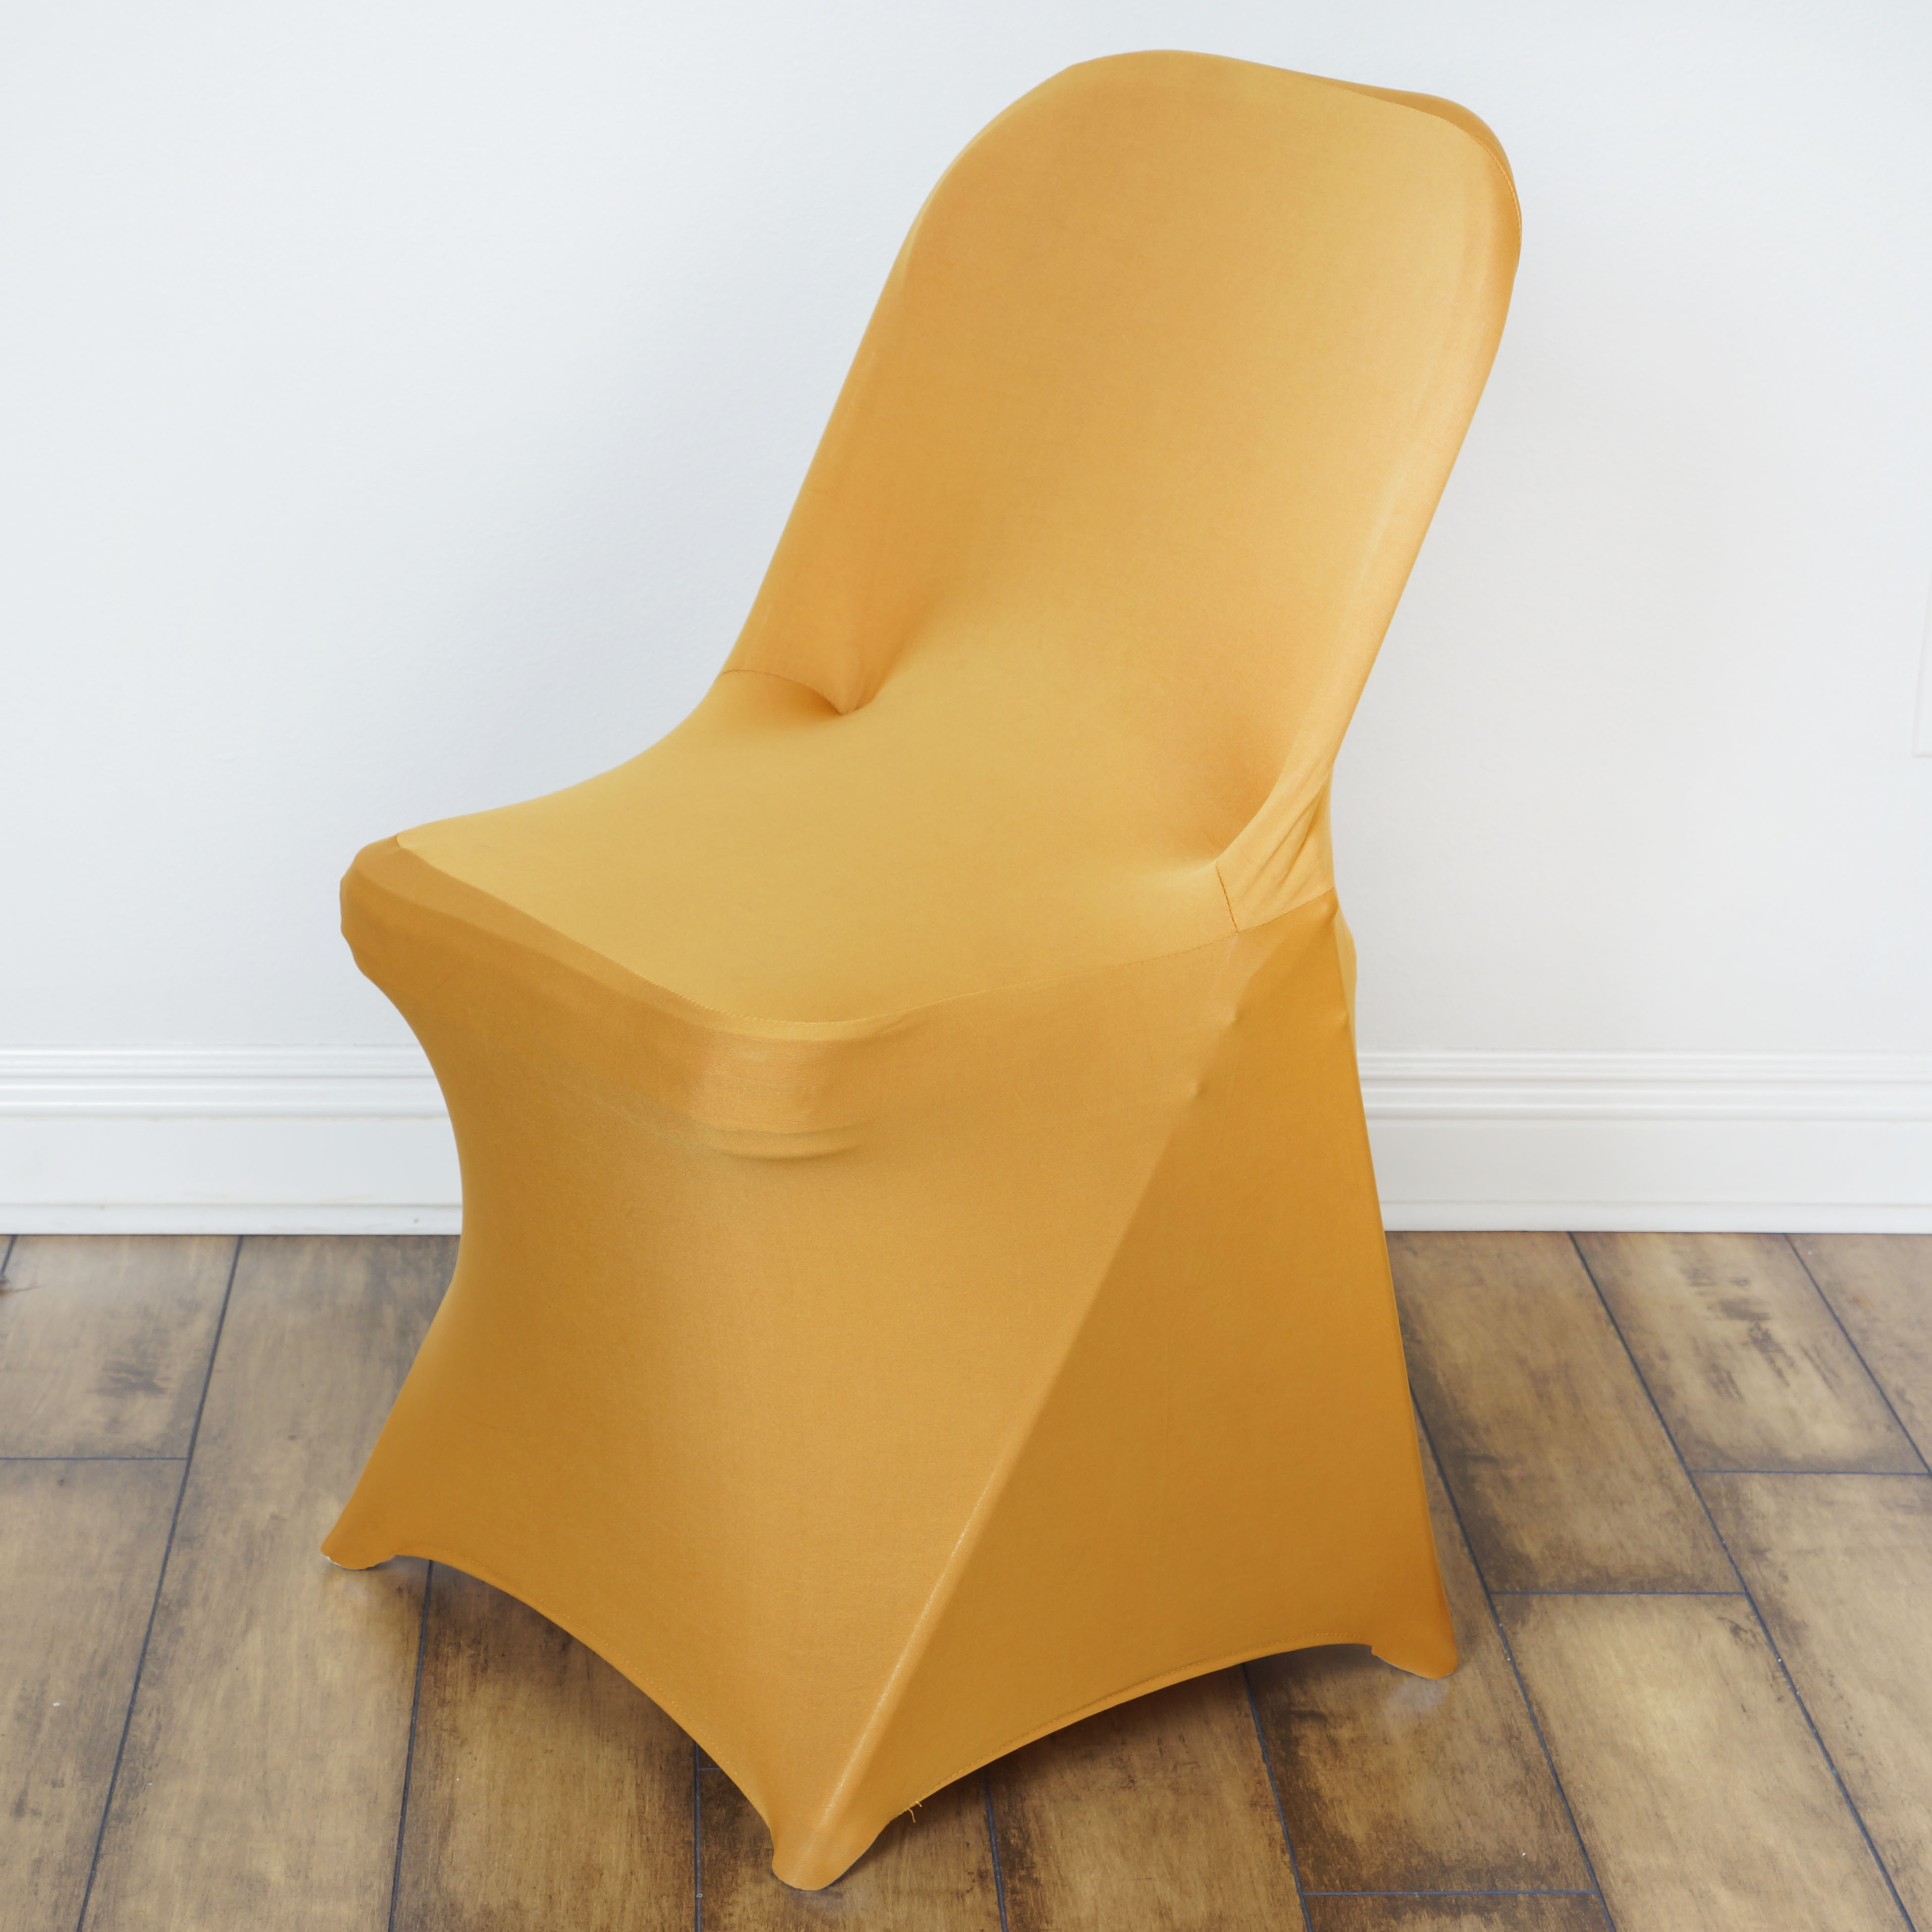 50 pcs Spandex Fitted Folding CHAIR COVERS for Wedding Reception